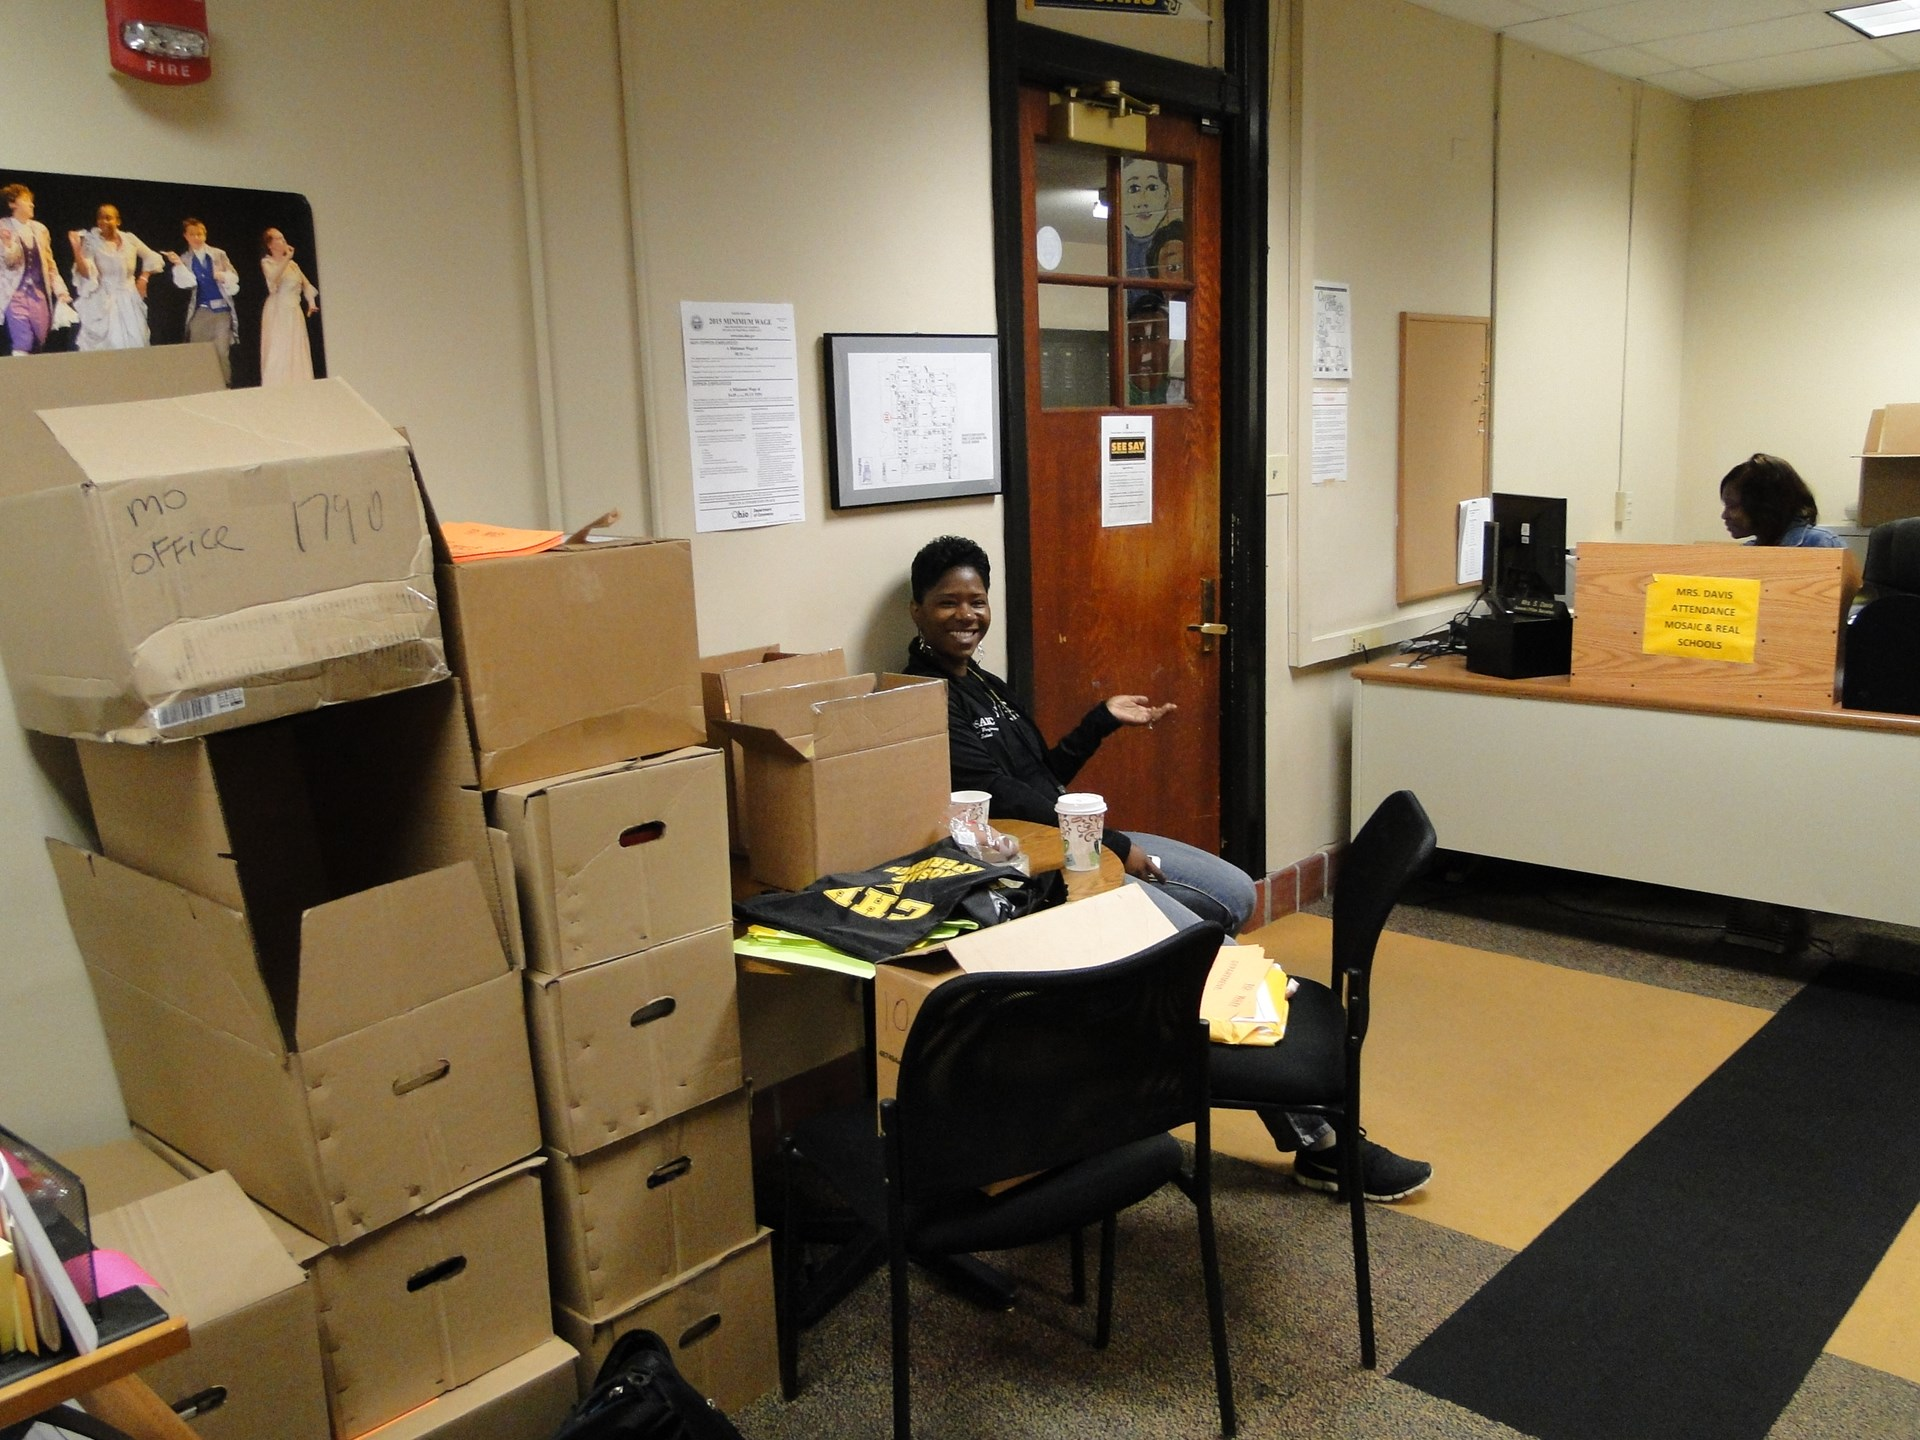 Faith Gordon among the many boxes in the Mosaic office.